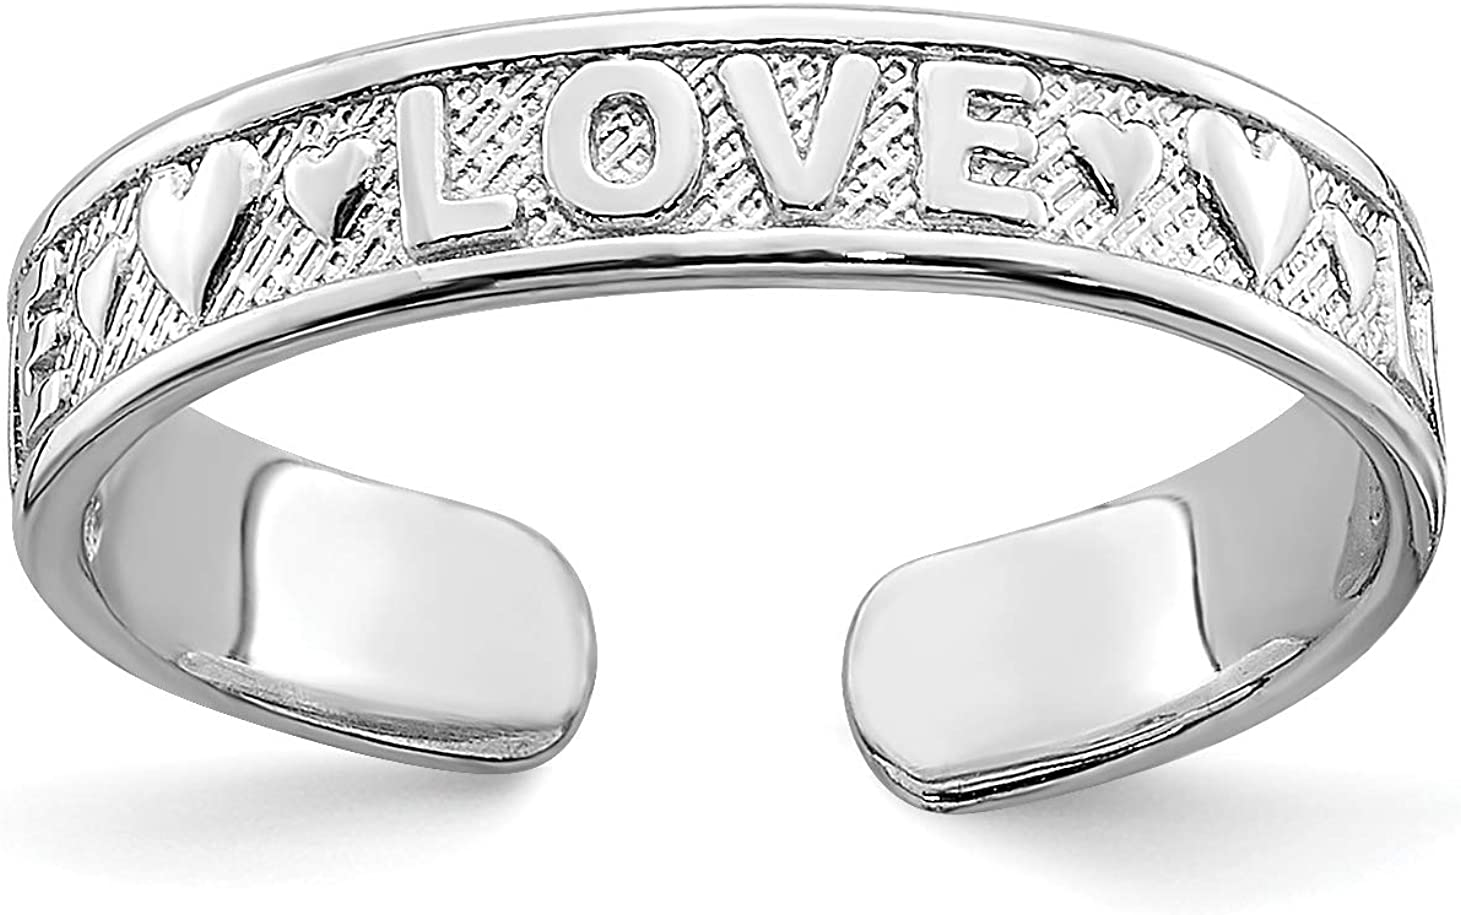 14k White Gold Love Word and Hearts Toe Ring with Textured Band